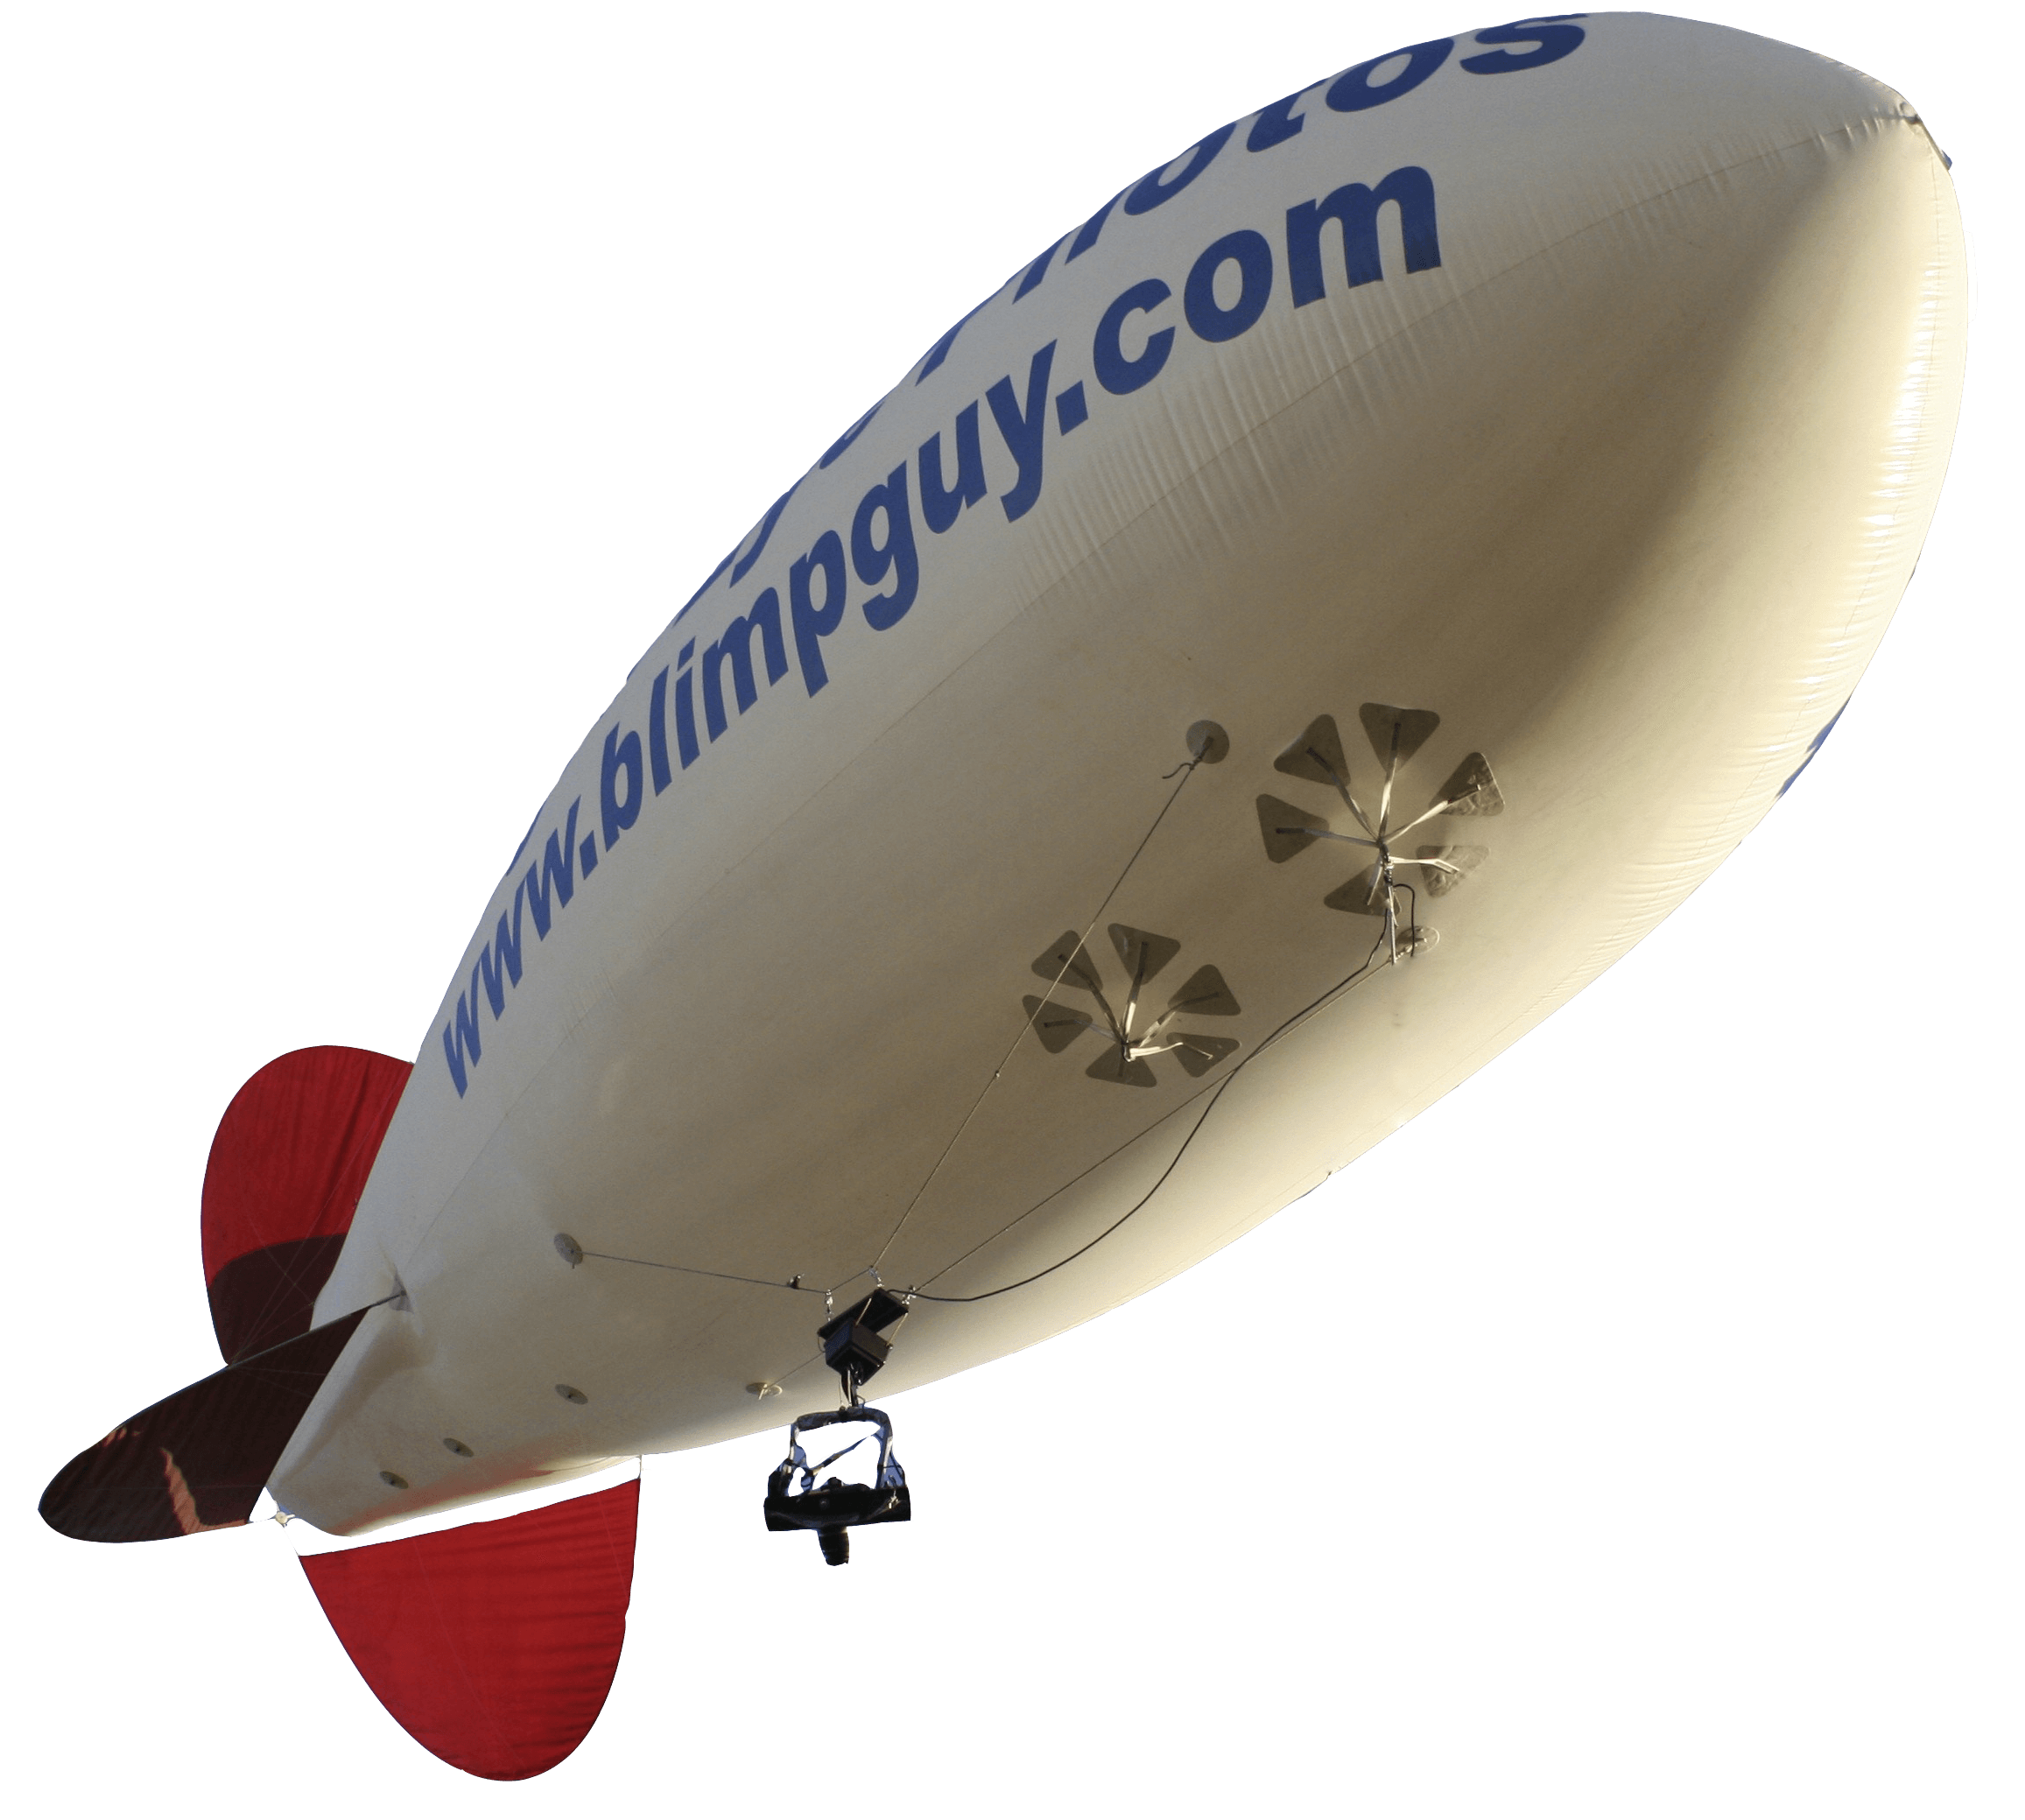 We use this blimp for aerial photos